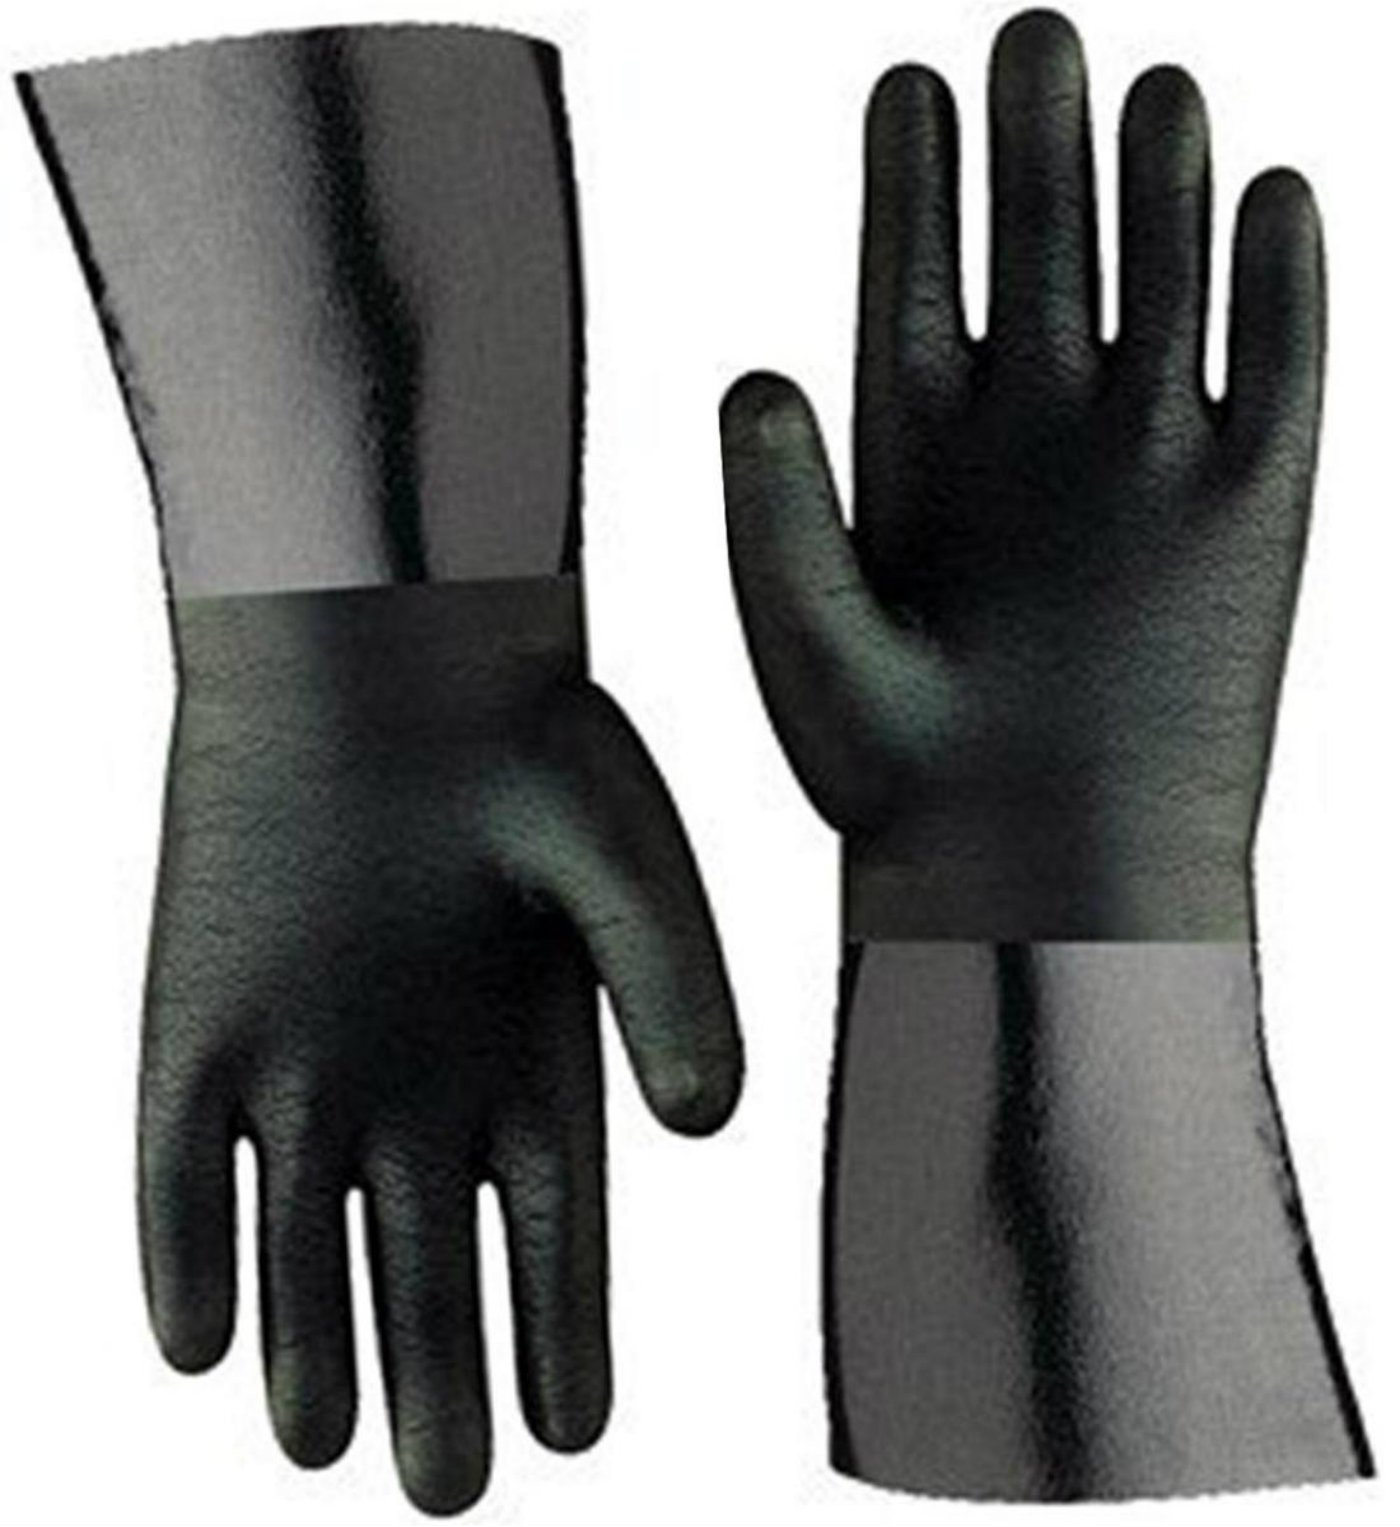 Artisan Griller BBQ Insulated Heat Resistant Cooking Gloves for Grill and Kitchen, Black (Size 10-12'') by ARTISAN GRILLER REDEFINING OUTDOOR COOKING